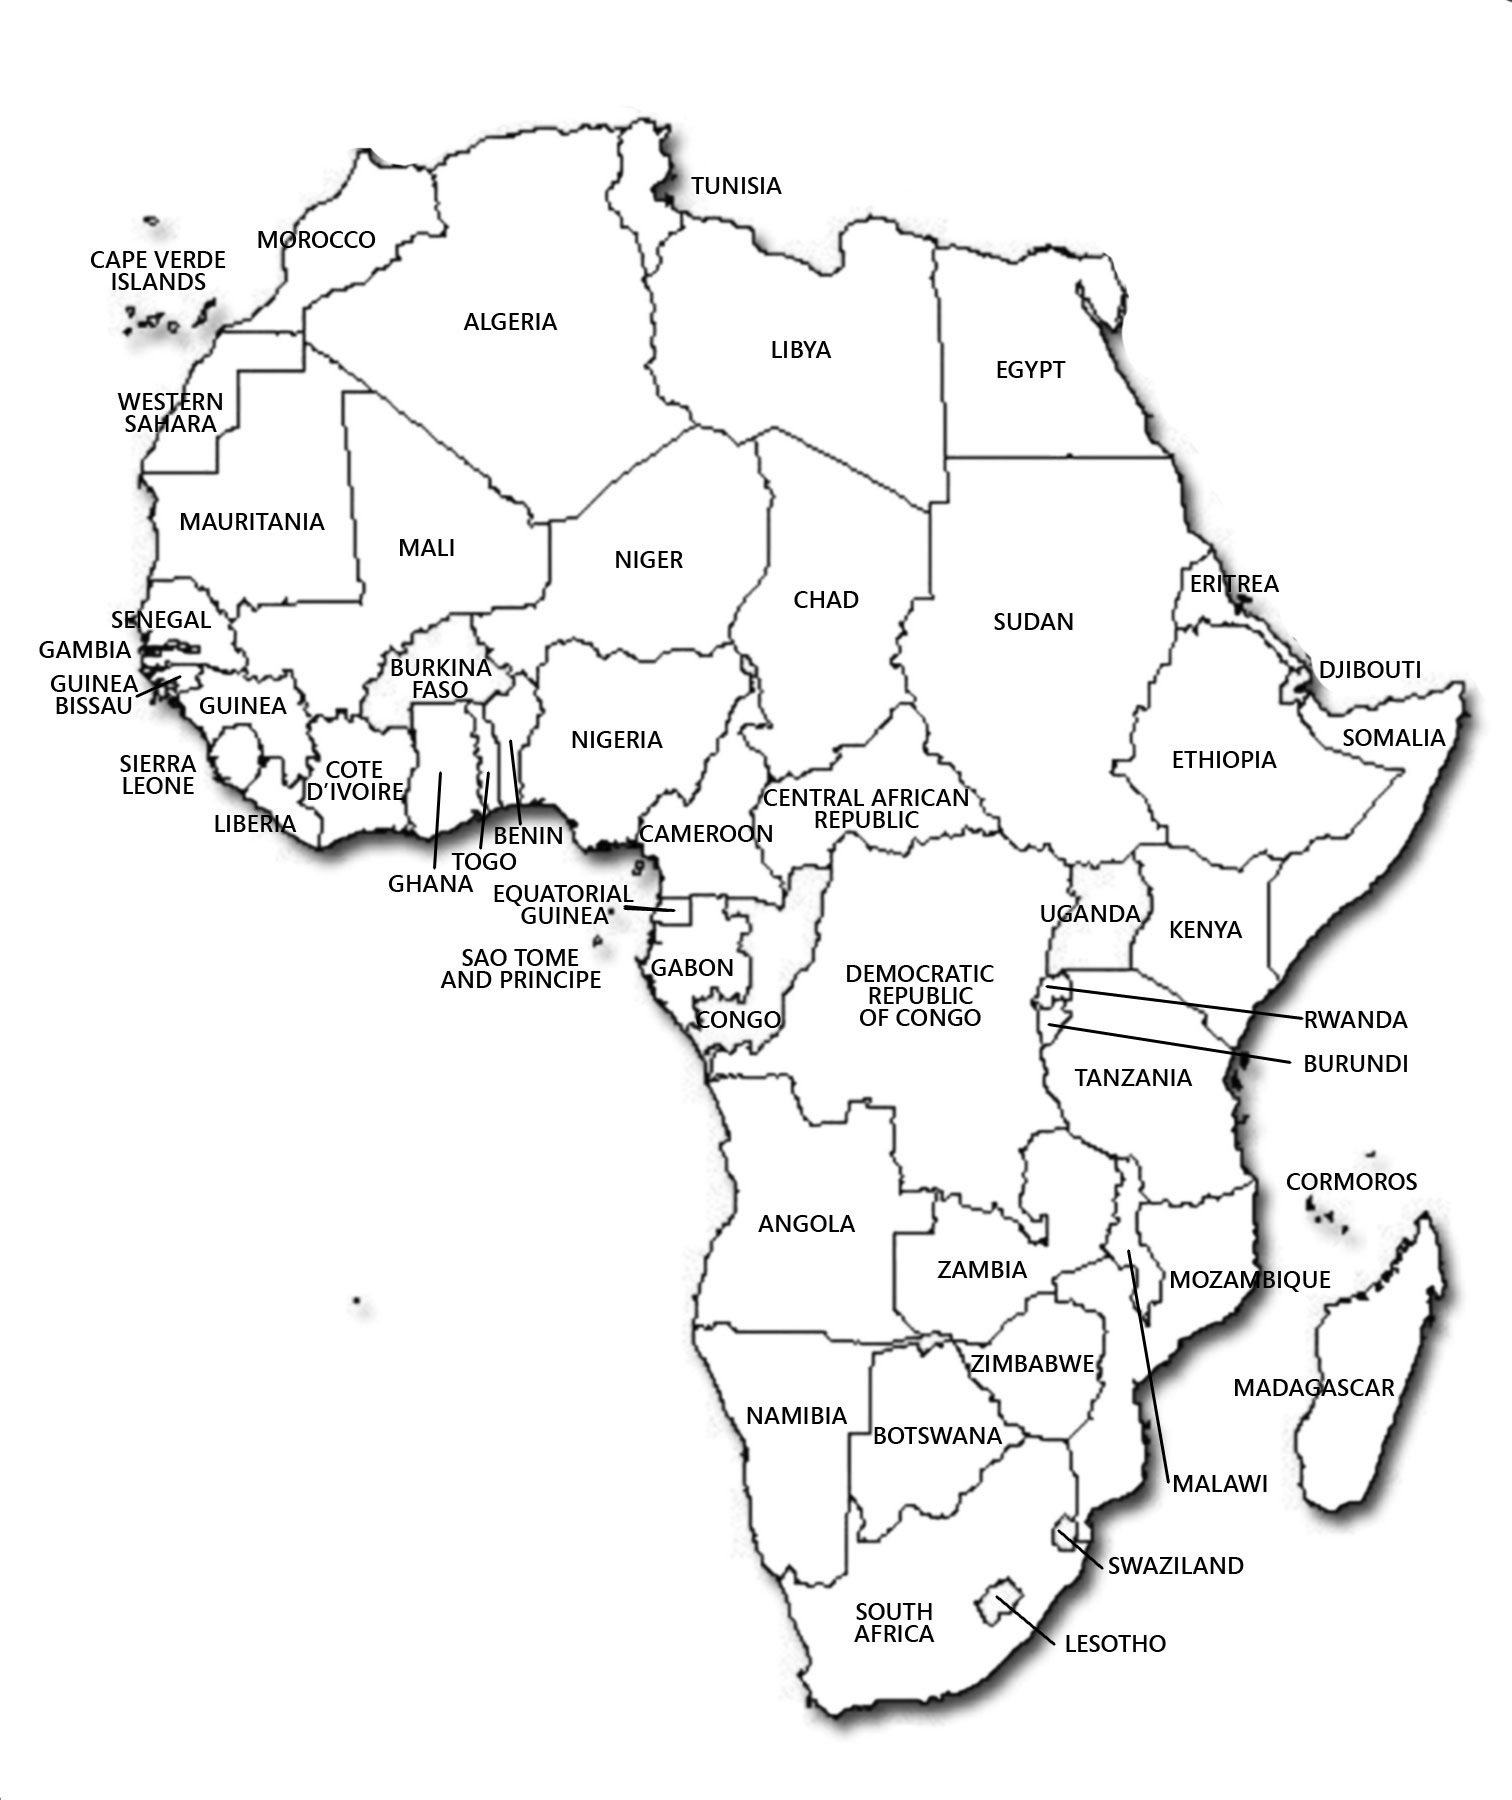 Maps Of Africa And African Countries